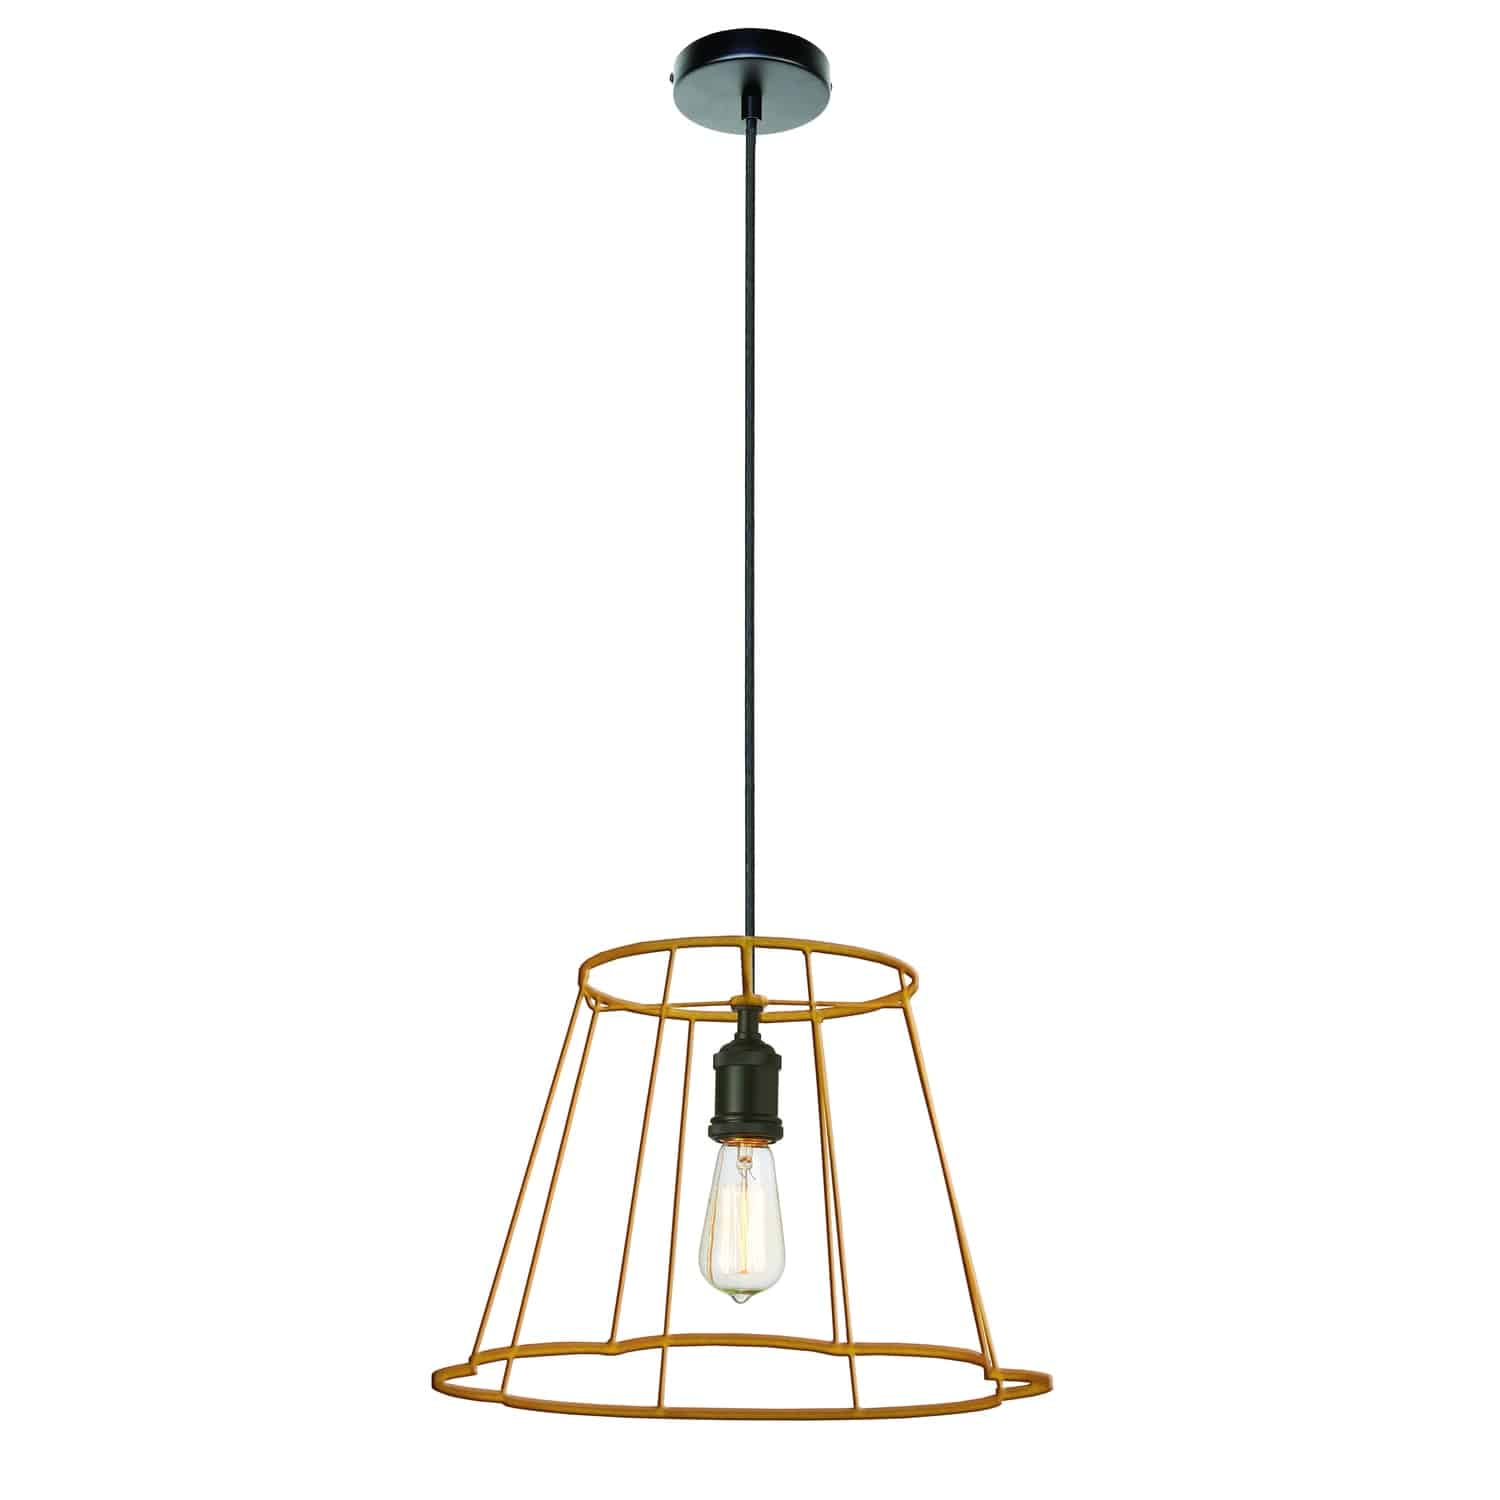 1 Light Metal Framed Pendant, Small Gold Finish